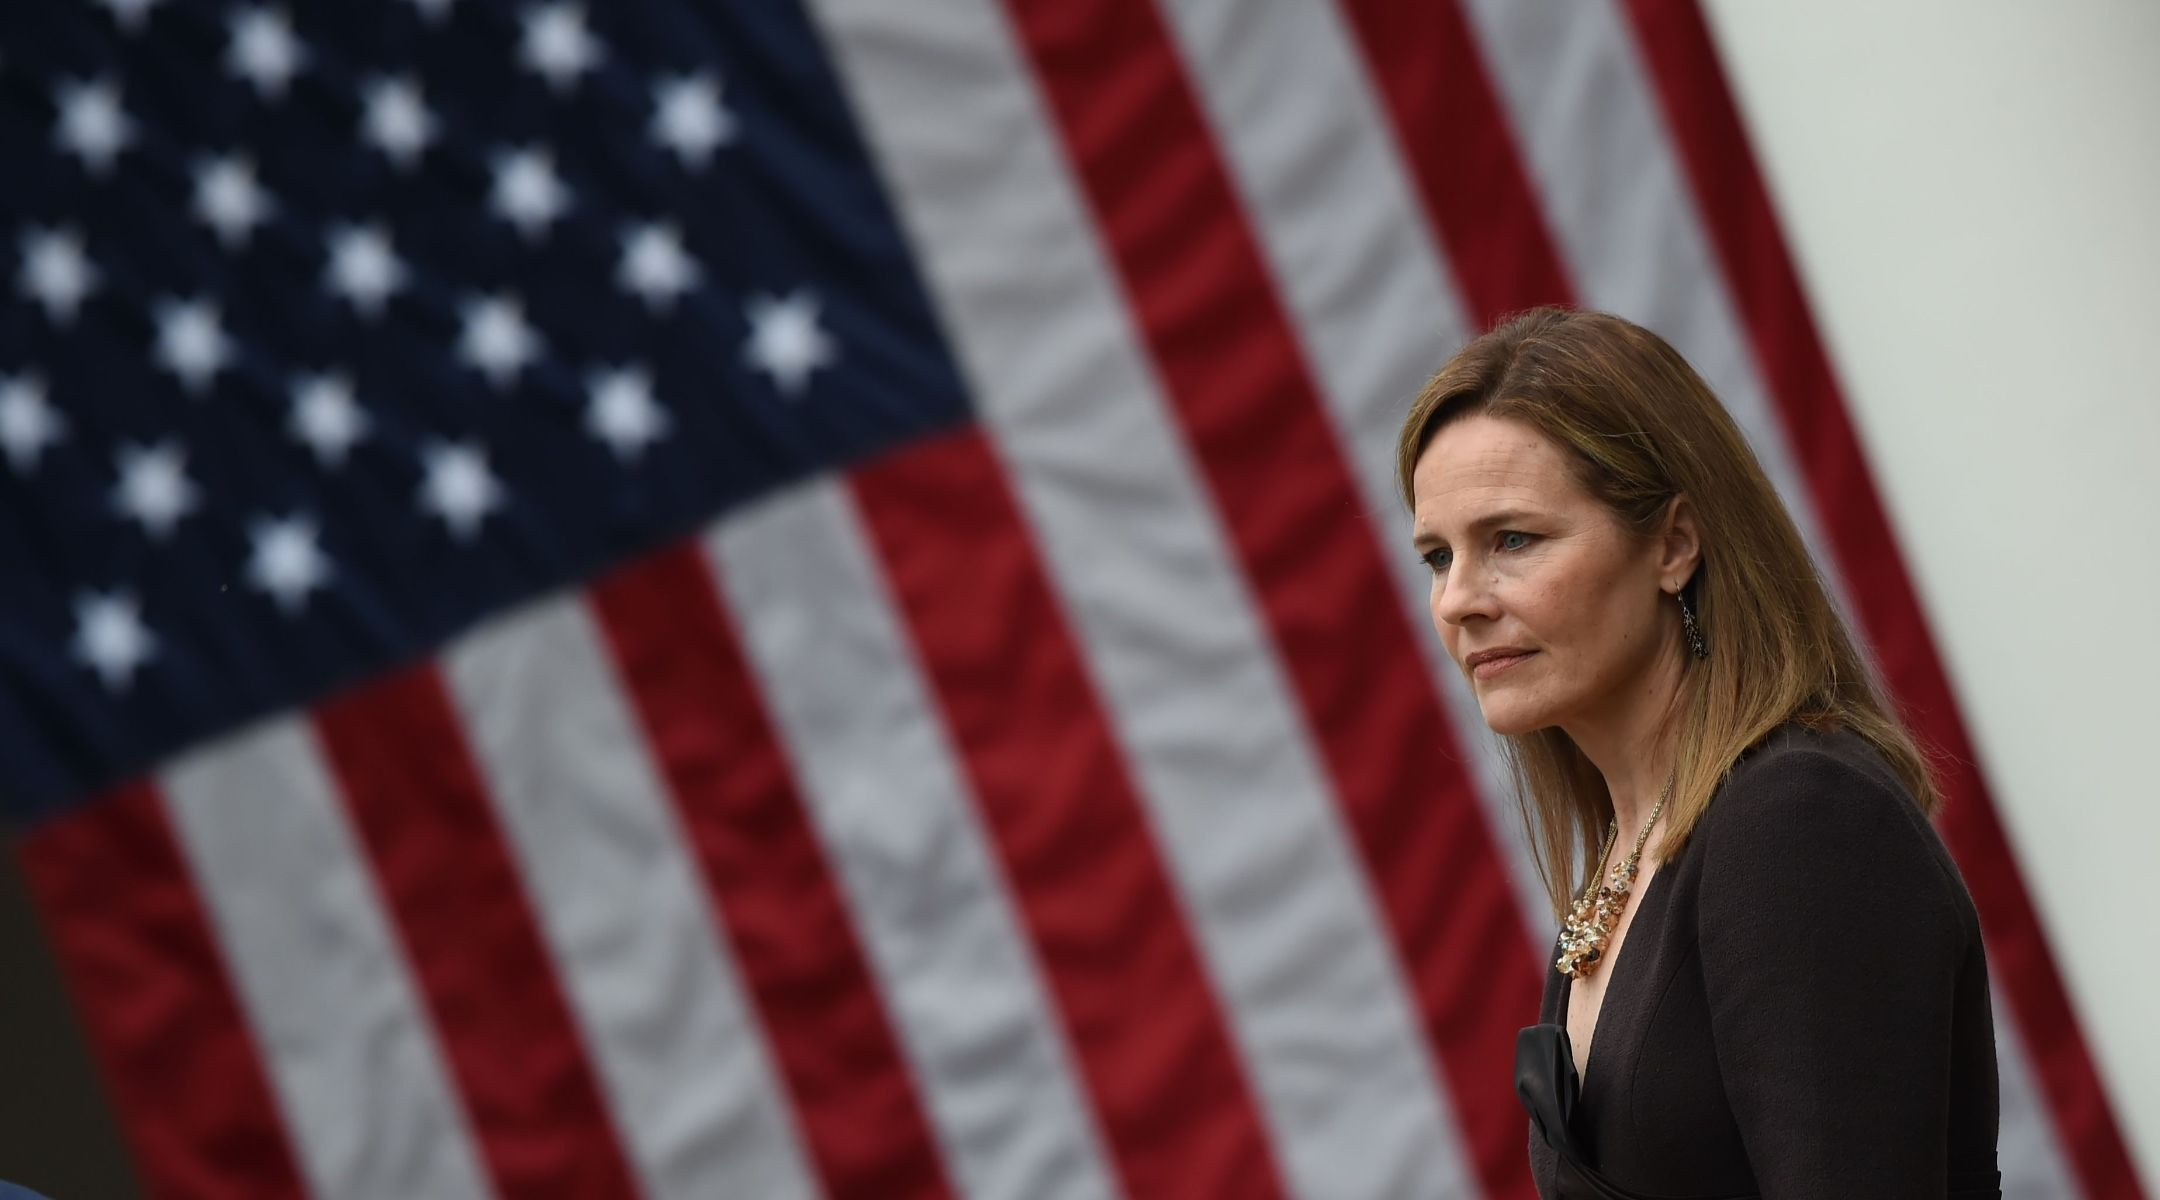 Trump nominates Amy Coney Barrett, a conservative religious judge, to replace Ginsburg on the Supreme...